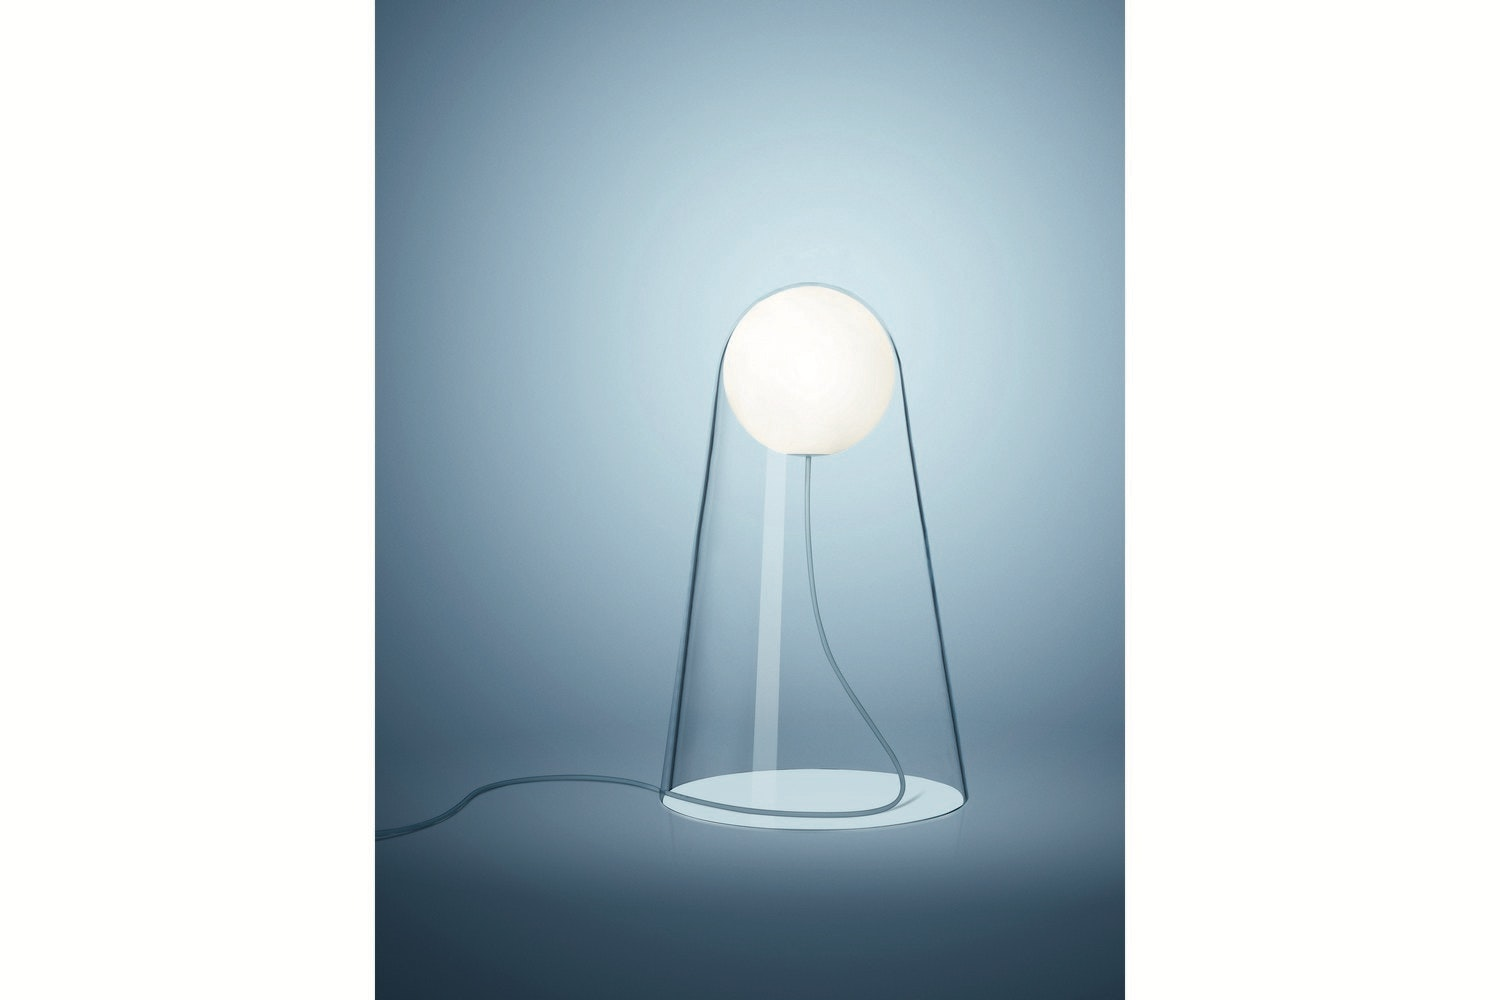 Satellight LED Touch Dimmer Table Lamp by Eugeni Quitllet for Foscarini